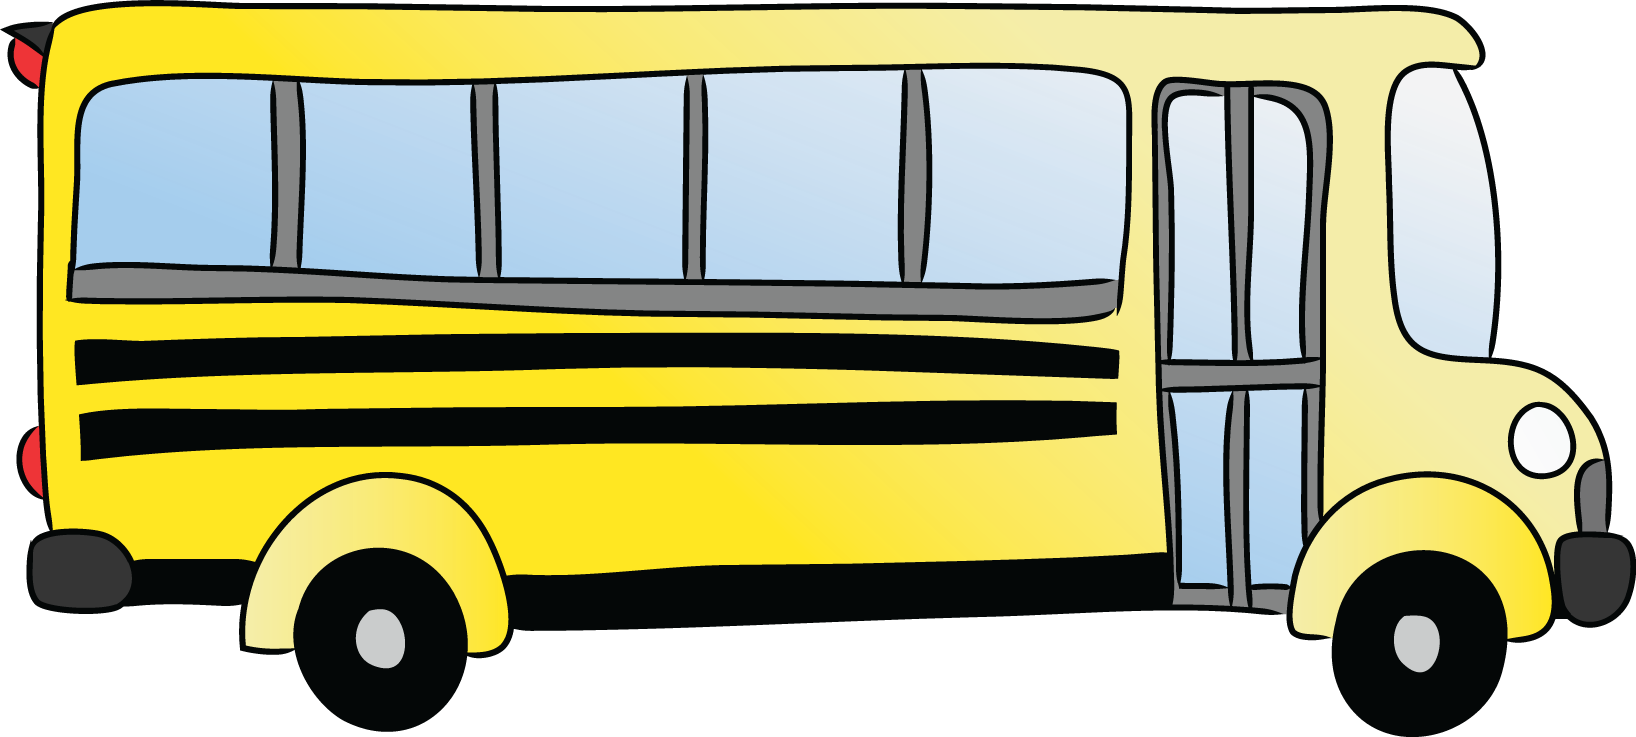 Bus clipart cartoon. Free picture of a